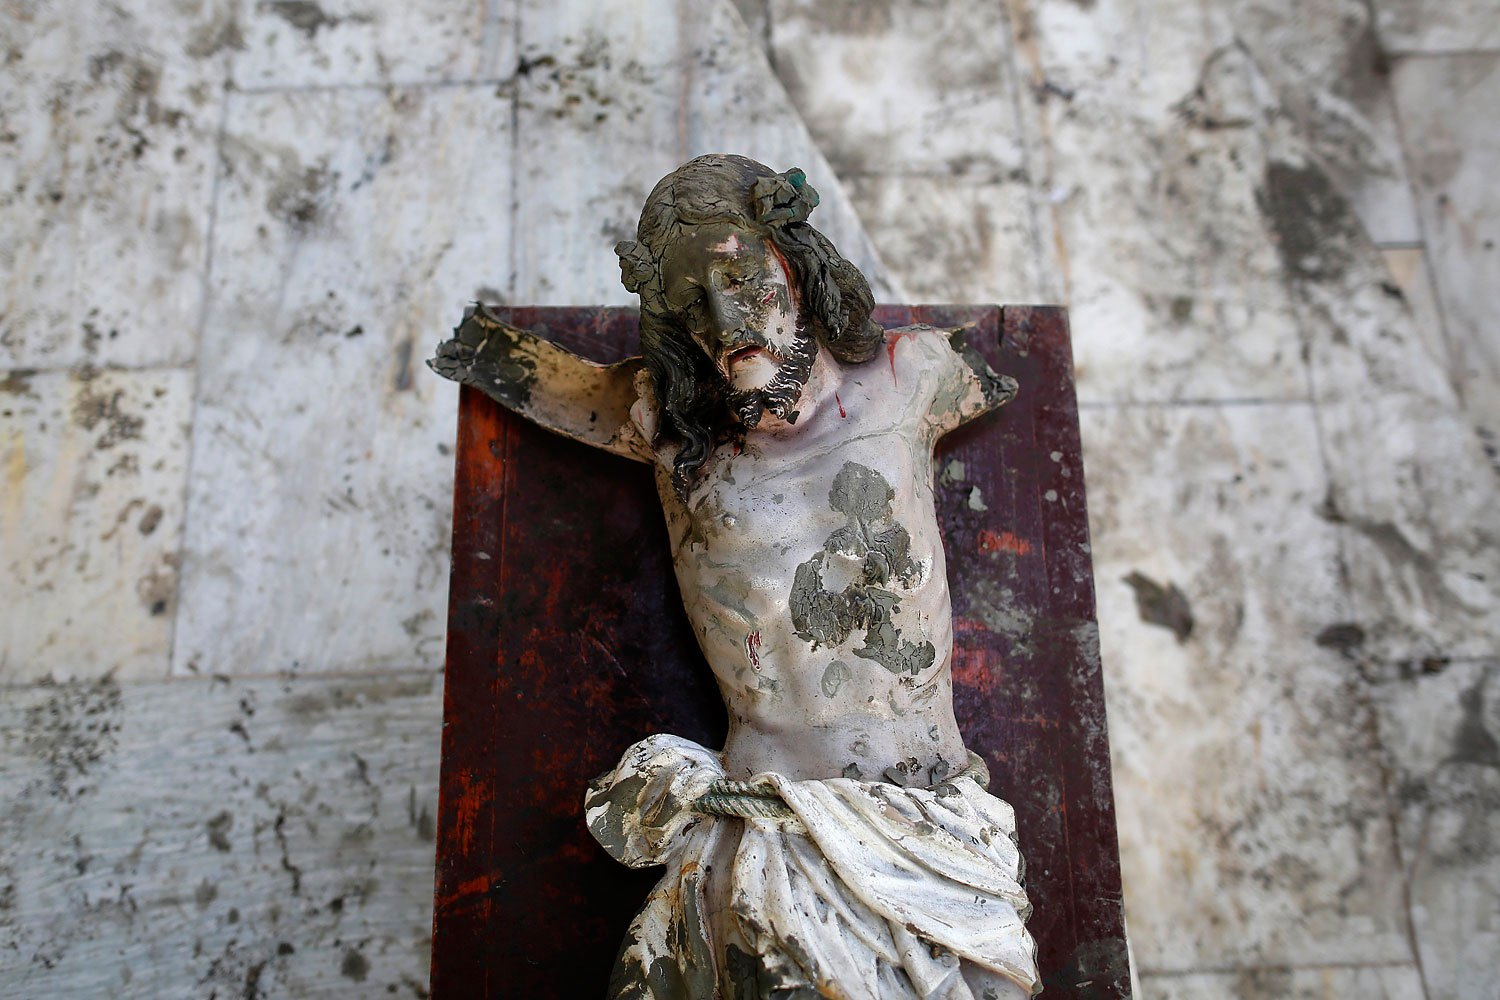 A damaged statue of Jesus Christ that was recovered from rubbles is placed in a church in an area wrecked by Typhoon Haiyan in Tacloban November 21, 2013.